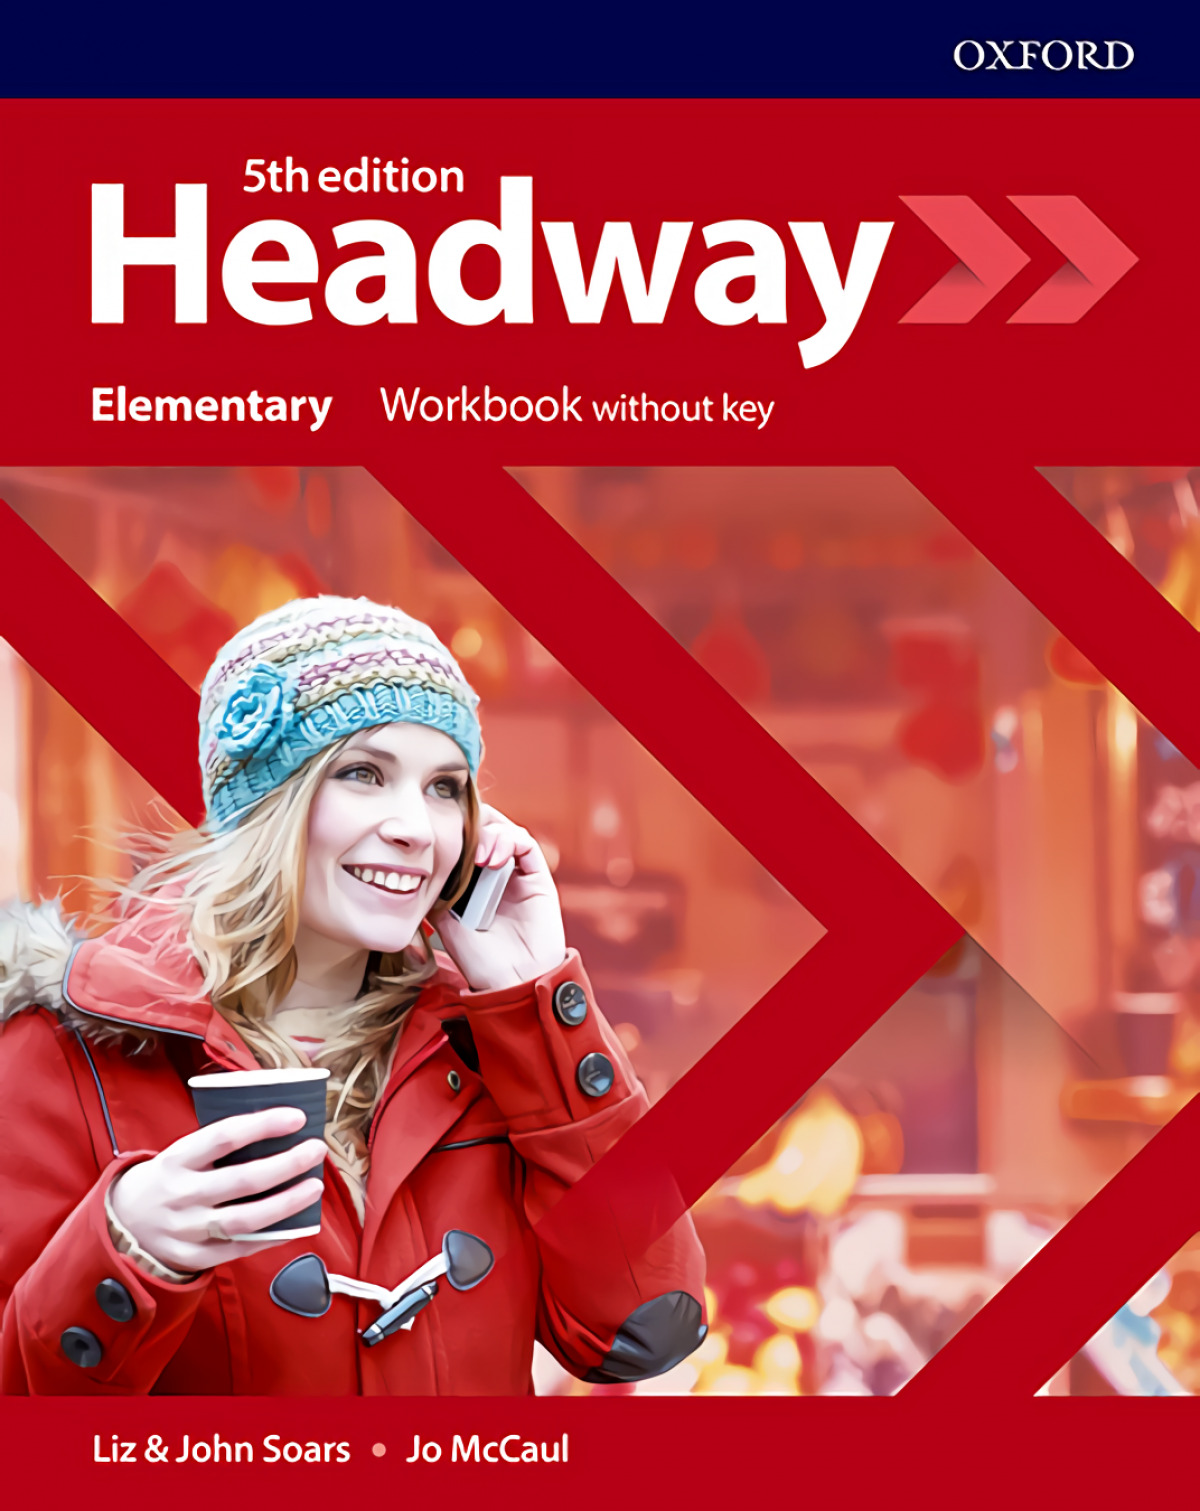 HEADWAY ELEMENTARY WORKBOOK WITHOUT KEY FIFTH EDITION